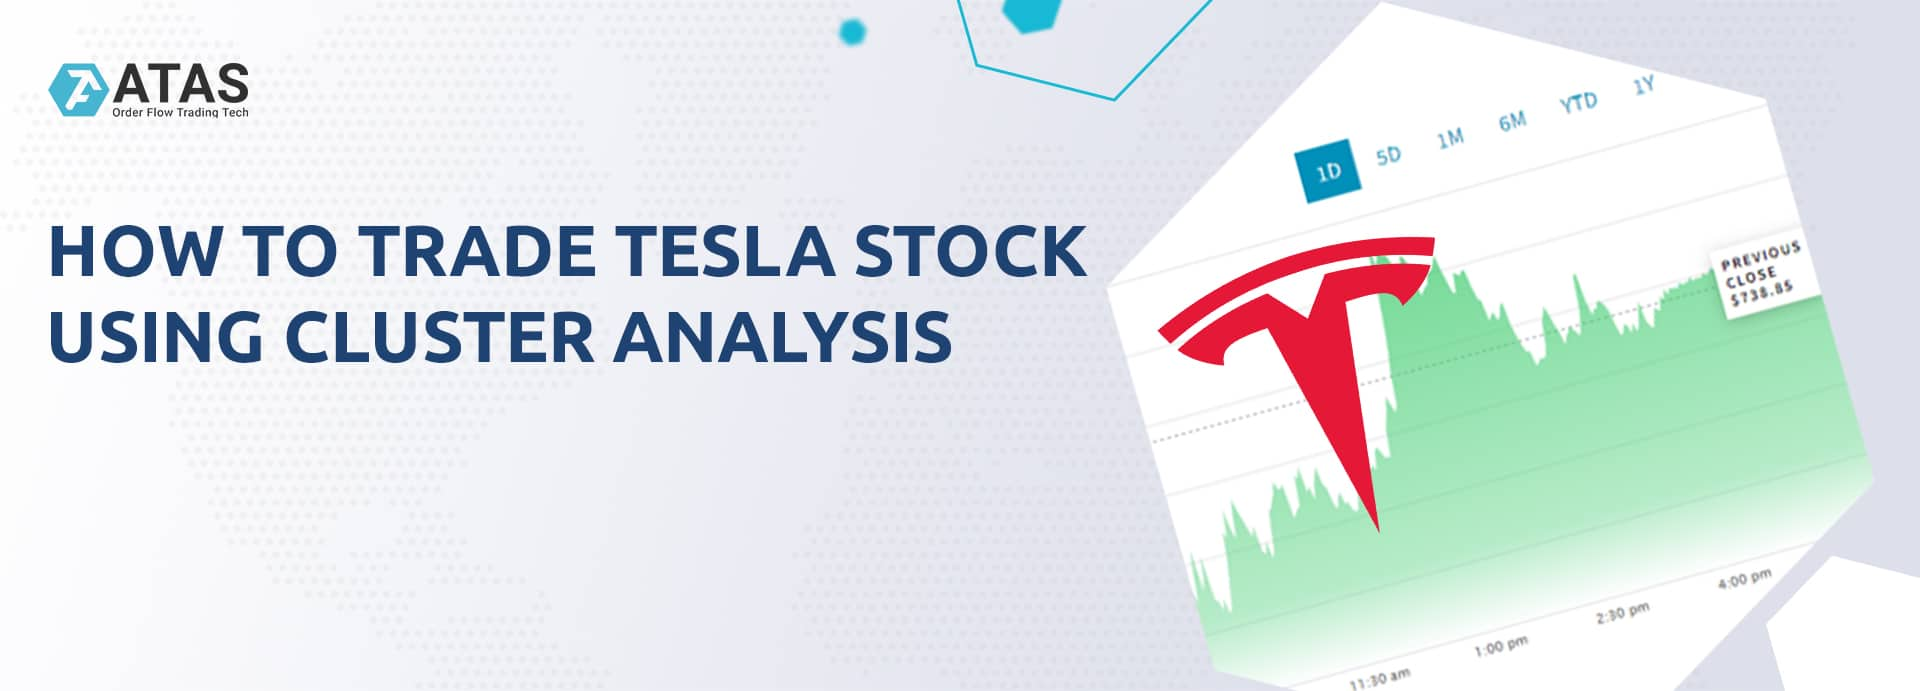 How to trade Tesla stock using cluster analysis